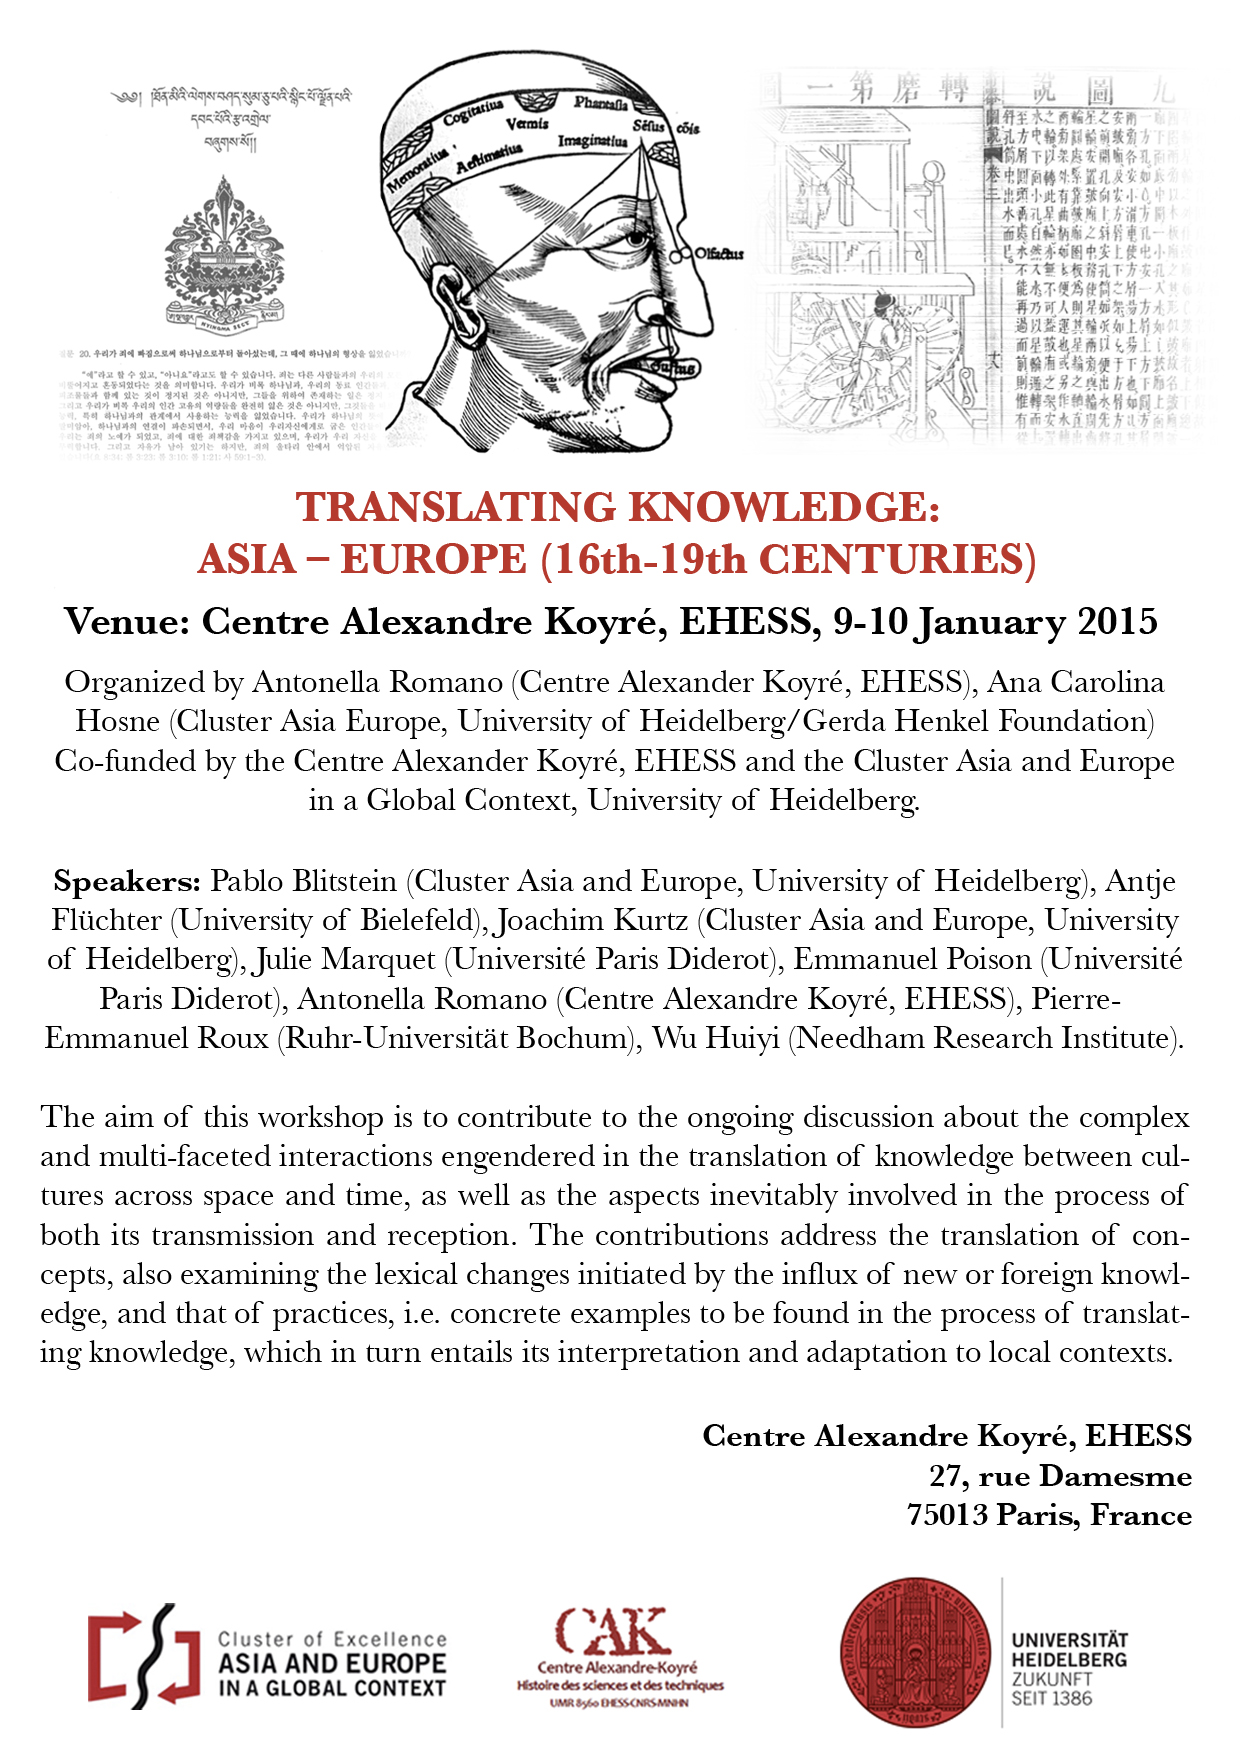 Journée d'étude : Translating knowledge: Asia-Europe (16-19th centuries)